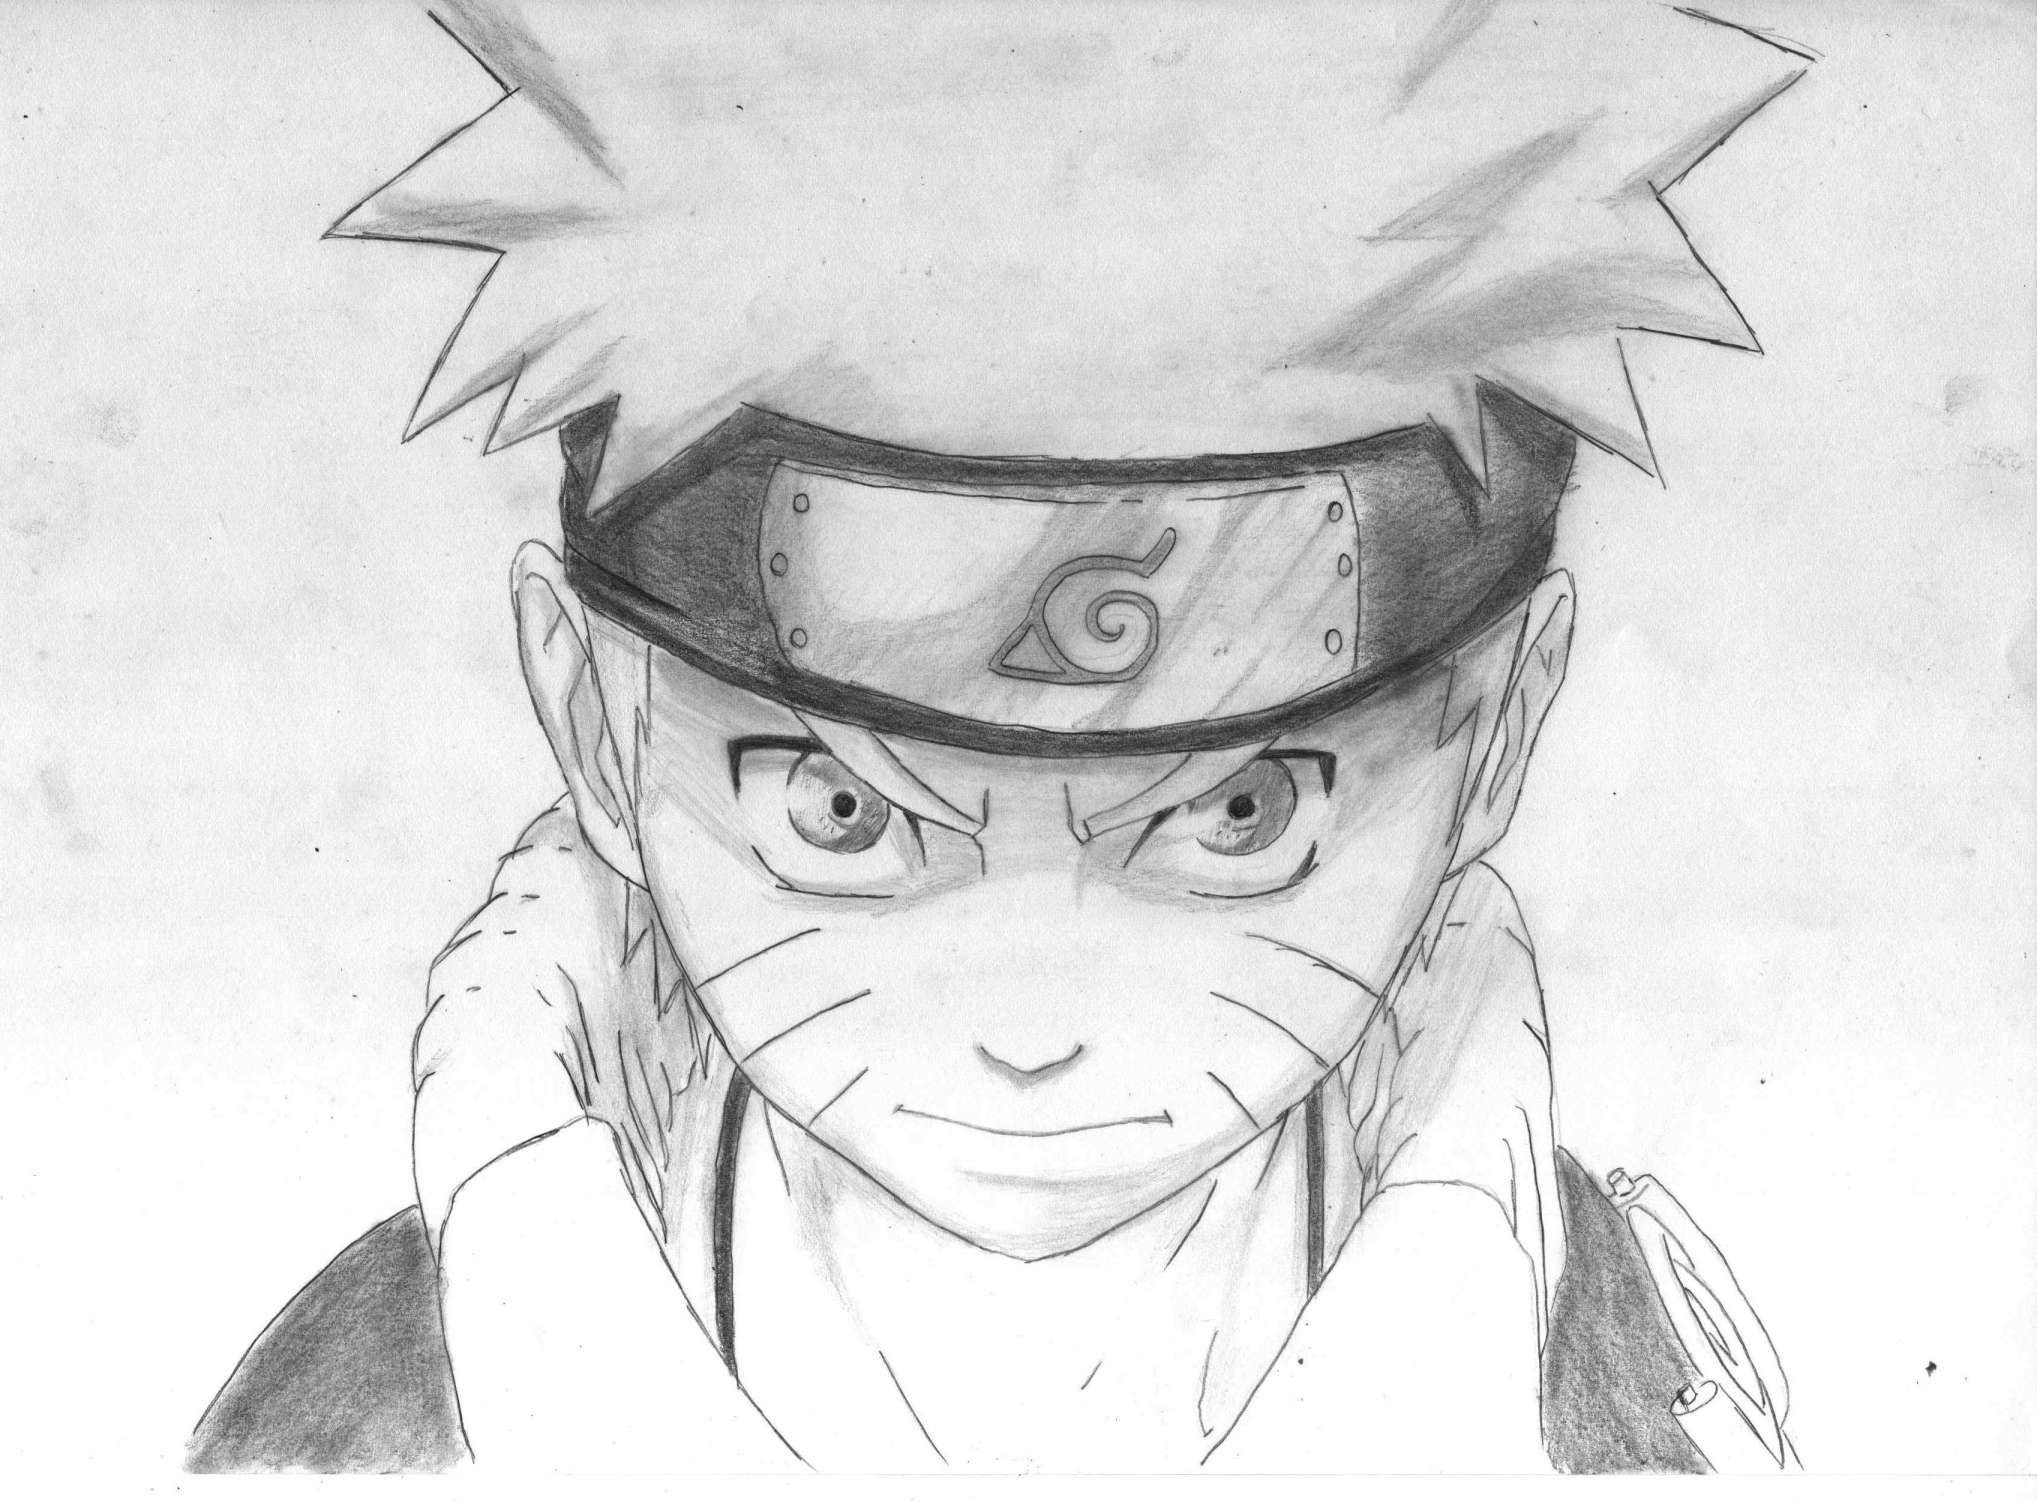 12 Naruto Pencil Drawing Naruto Drawings Cool Drawings Best Anime Drawings